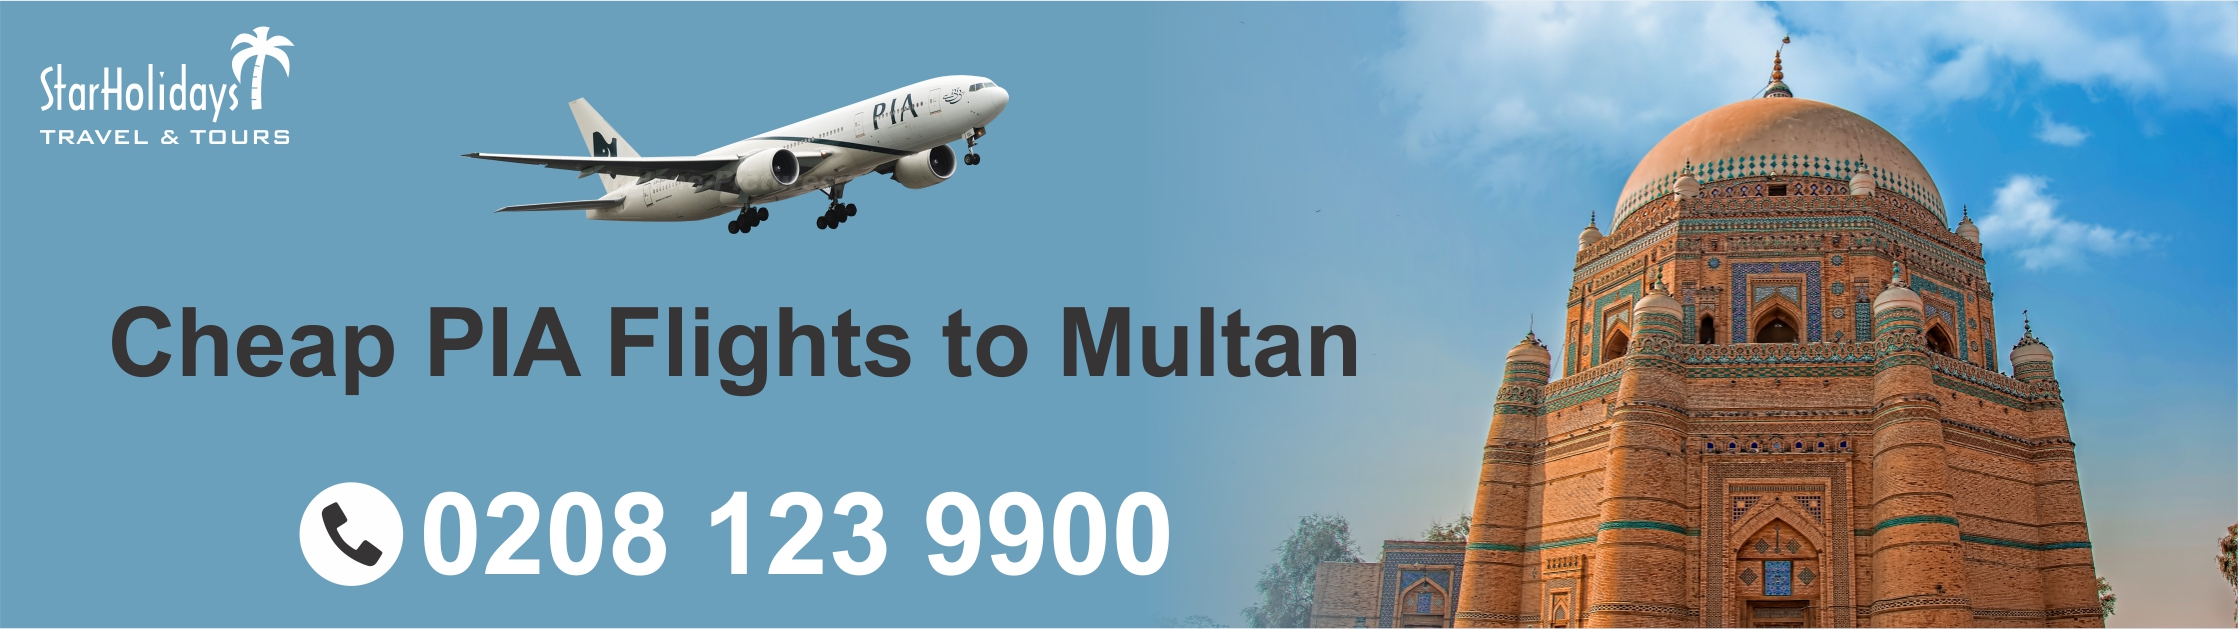 Cheap PIA Flights to Multan